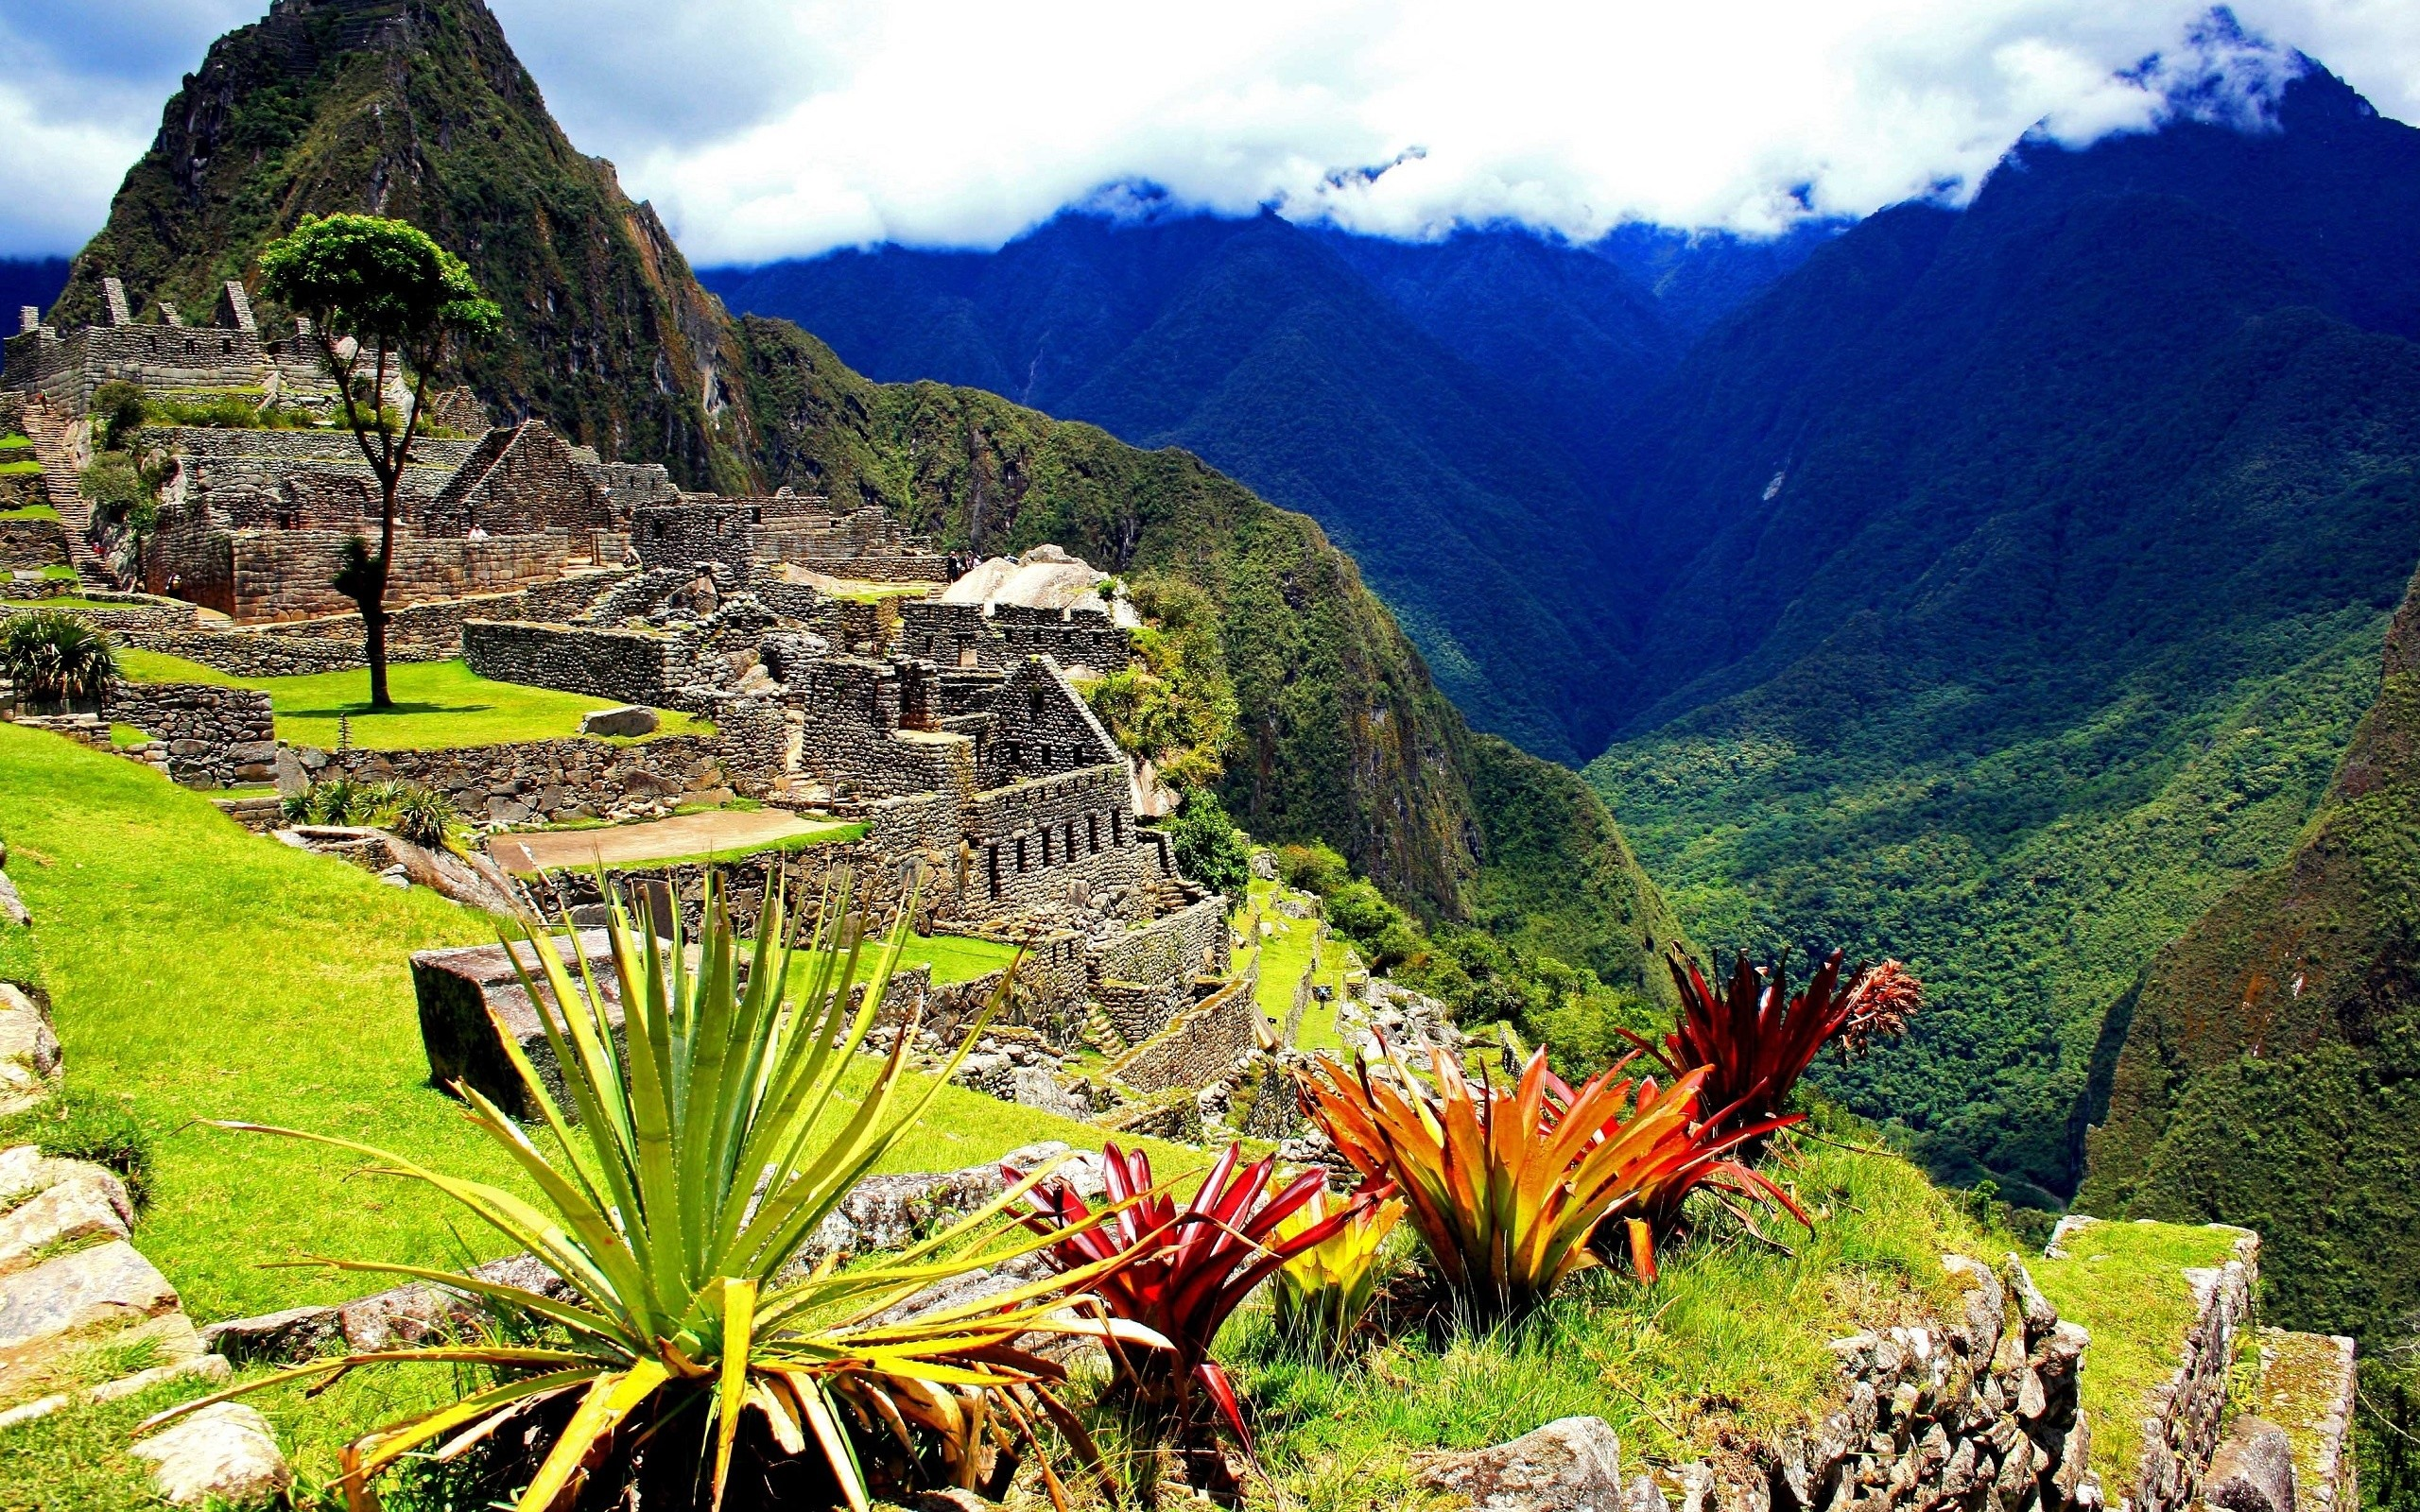 National Geographic Wallpaper Download: Machu Picchu Wallpaper National Geographic ·① WallpaperTag